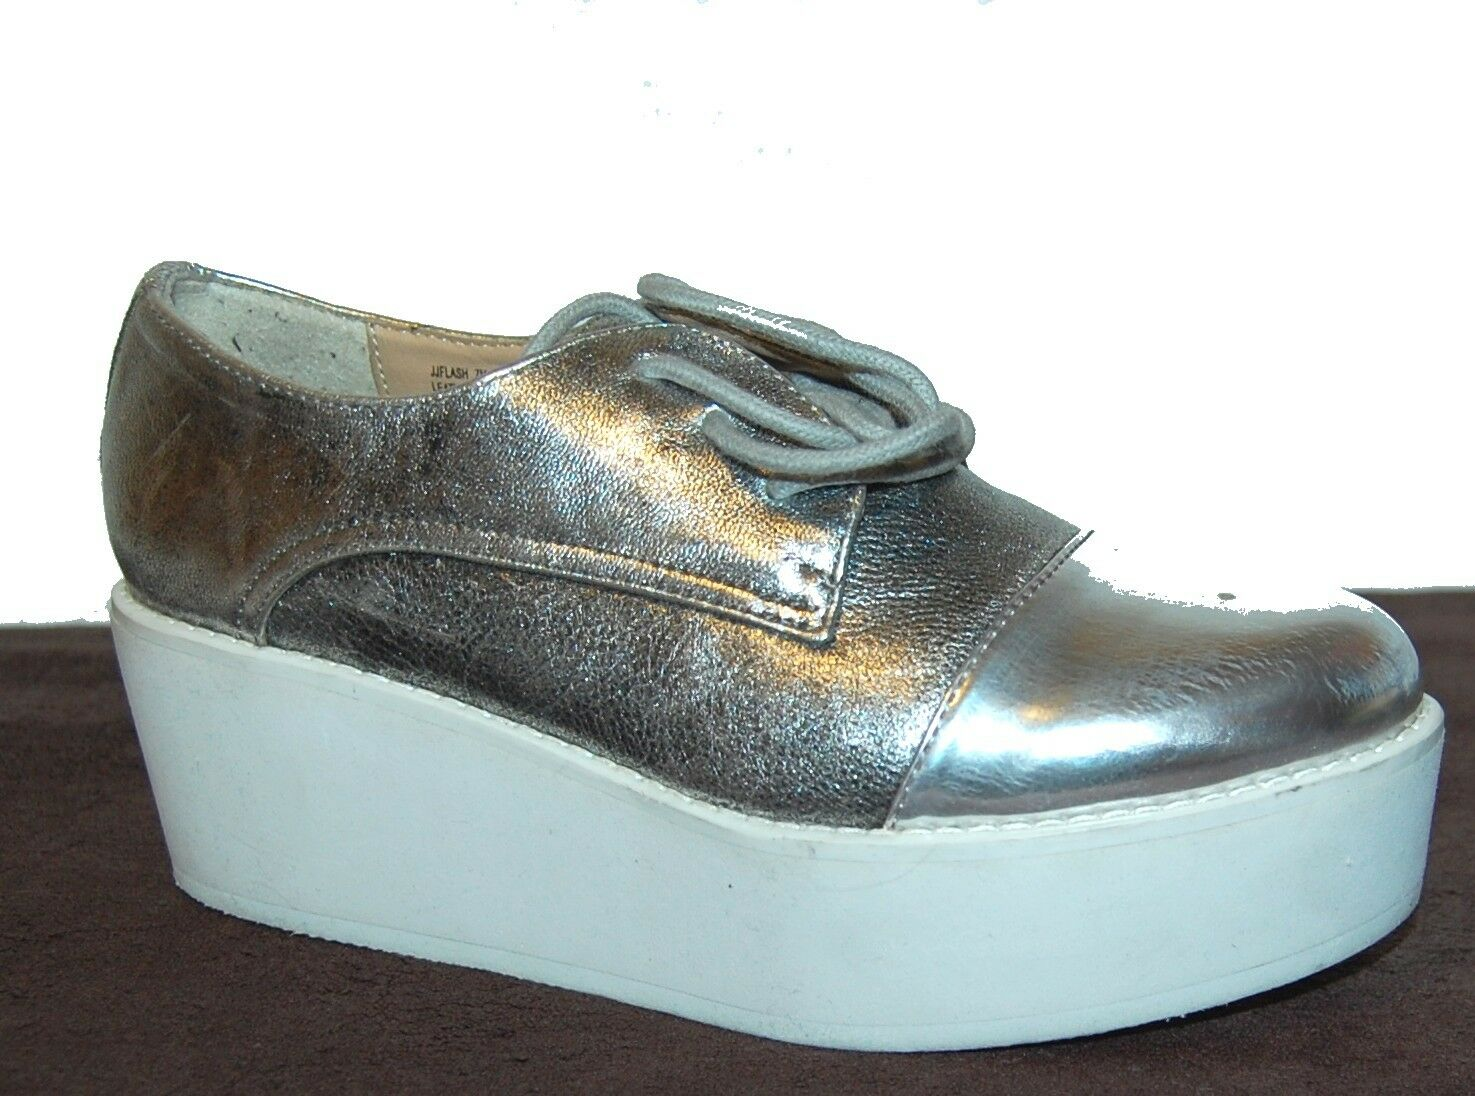 Steve Madden Woman's Silver Leather Fashion Sneackers Shoes Size US 7 Med